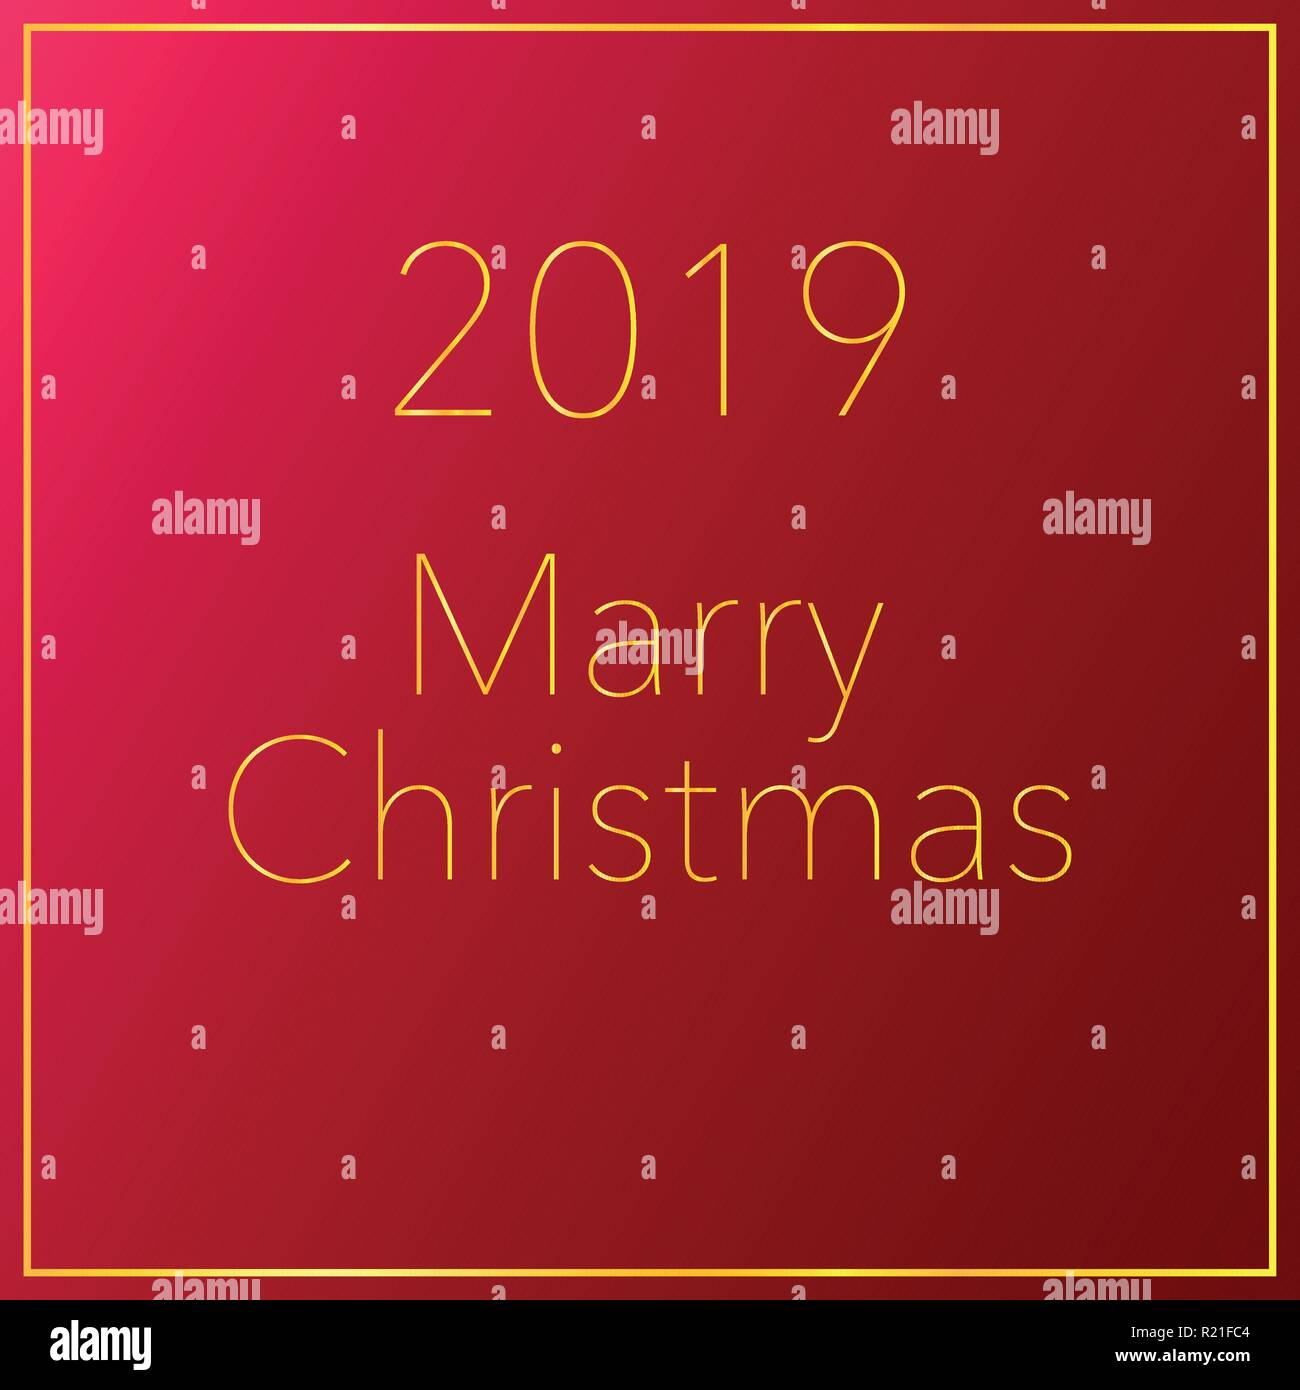 merry christmas and happy new year background holiday card 2019 red background vector illustration